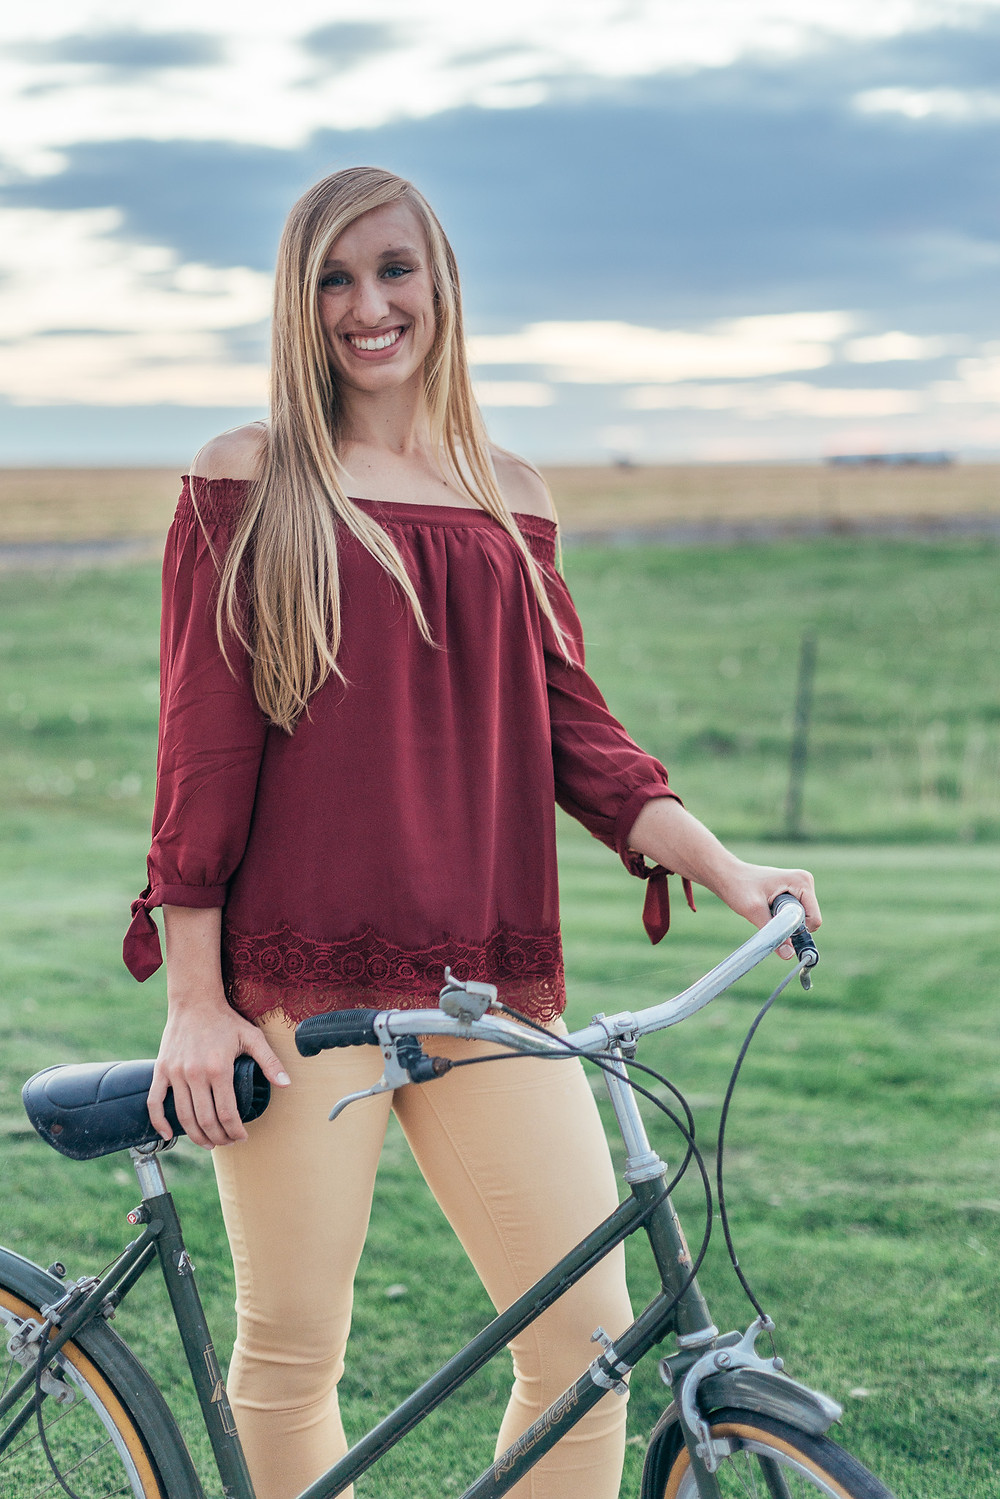 Abby and her bike, senior 2018